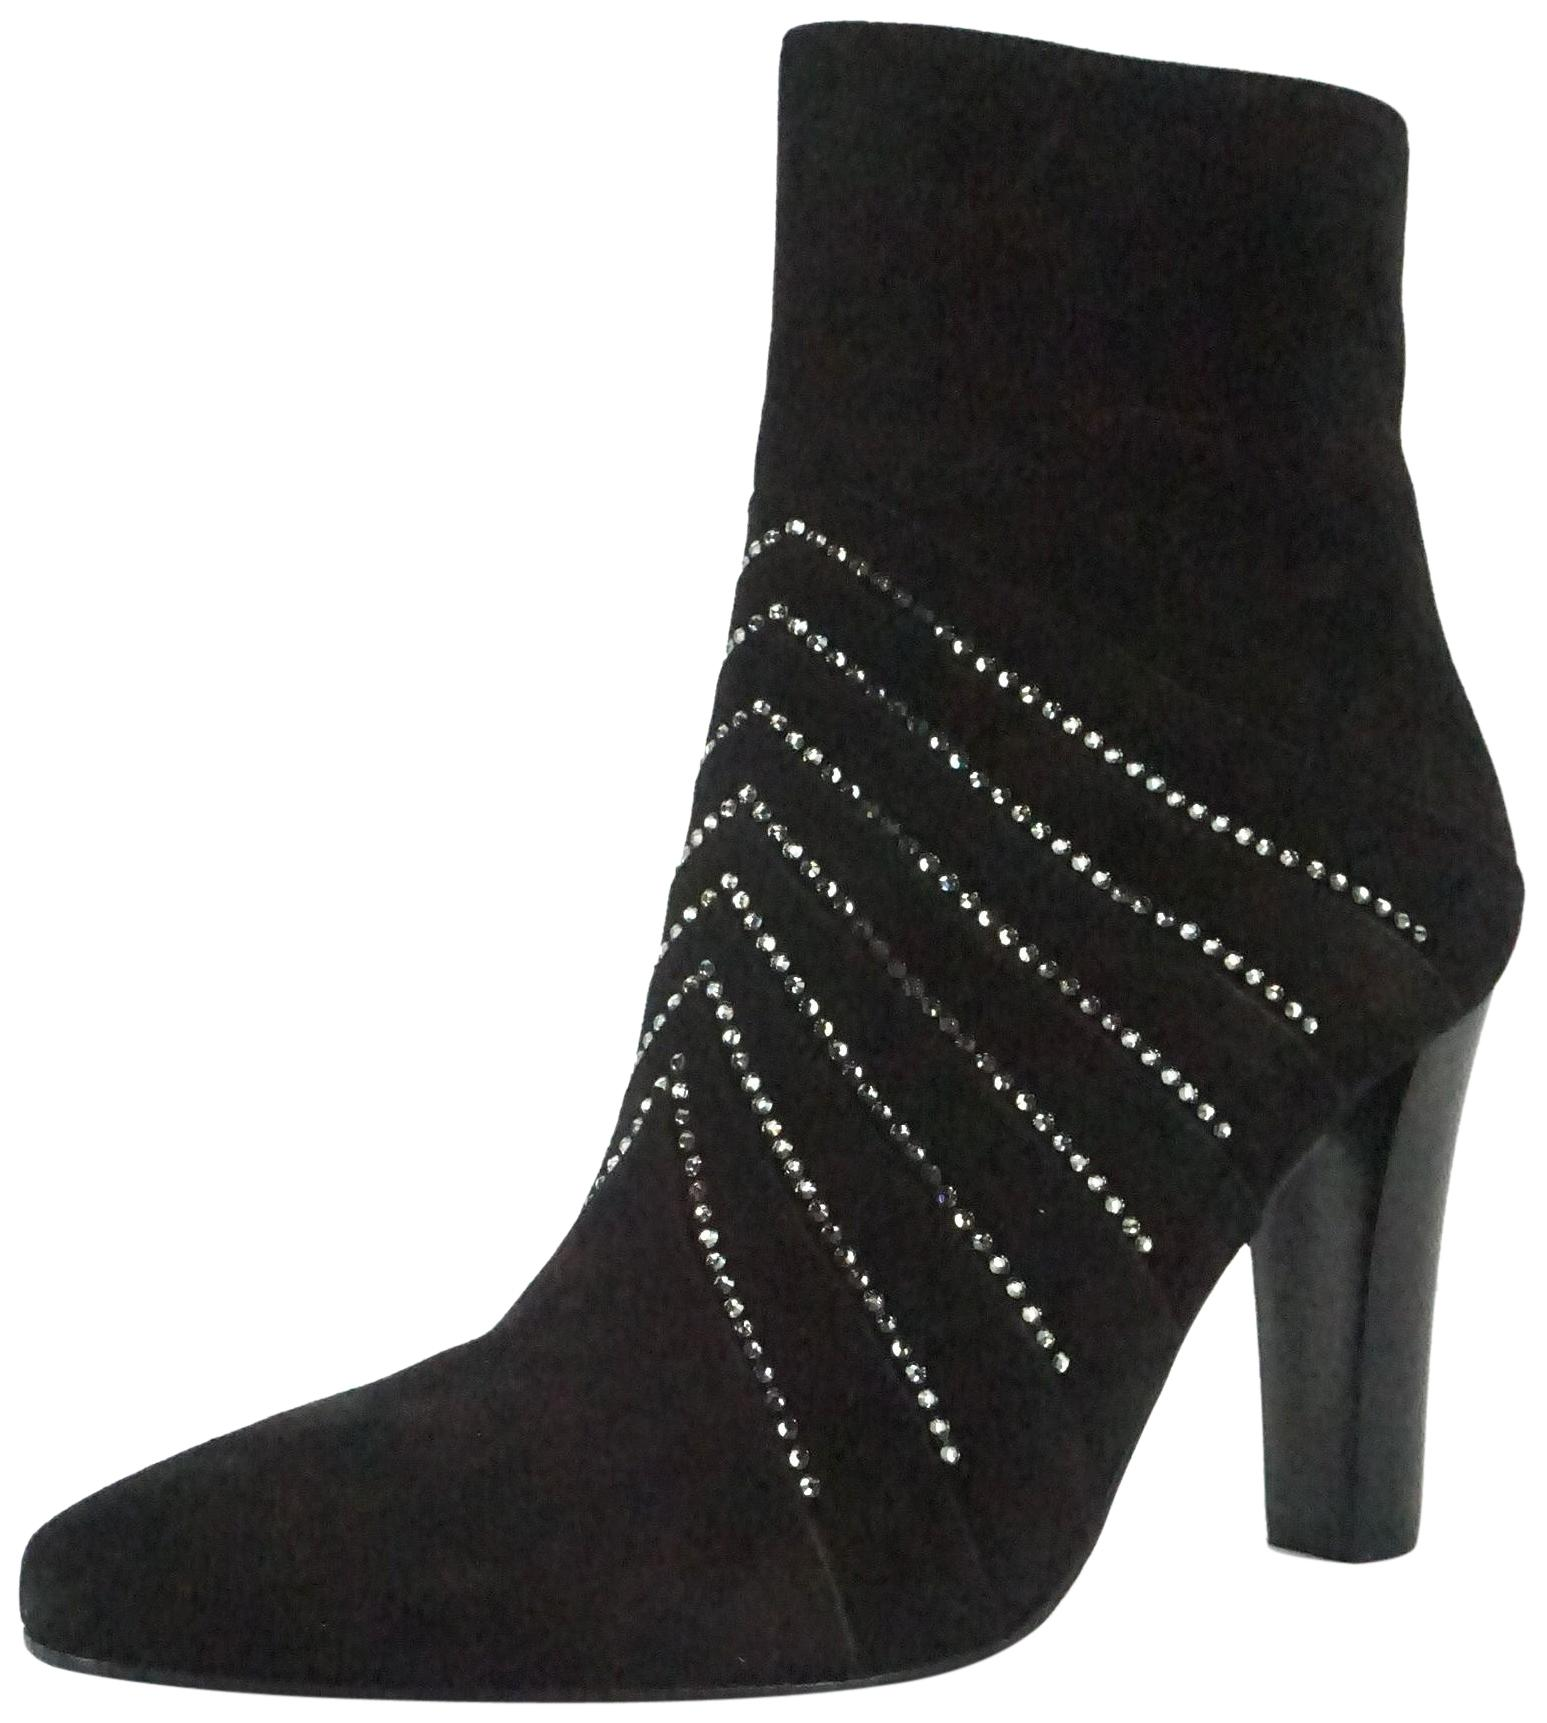 12793d75c4c ... best price saint laurent ysl yves high heels pointed toe striped black  boots 40180 1f977